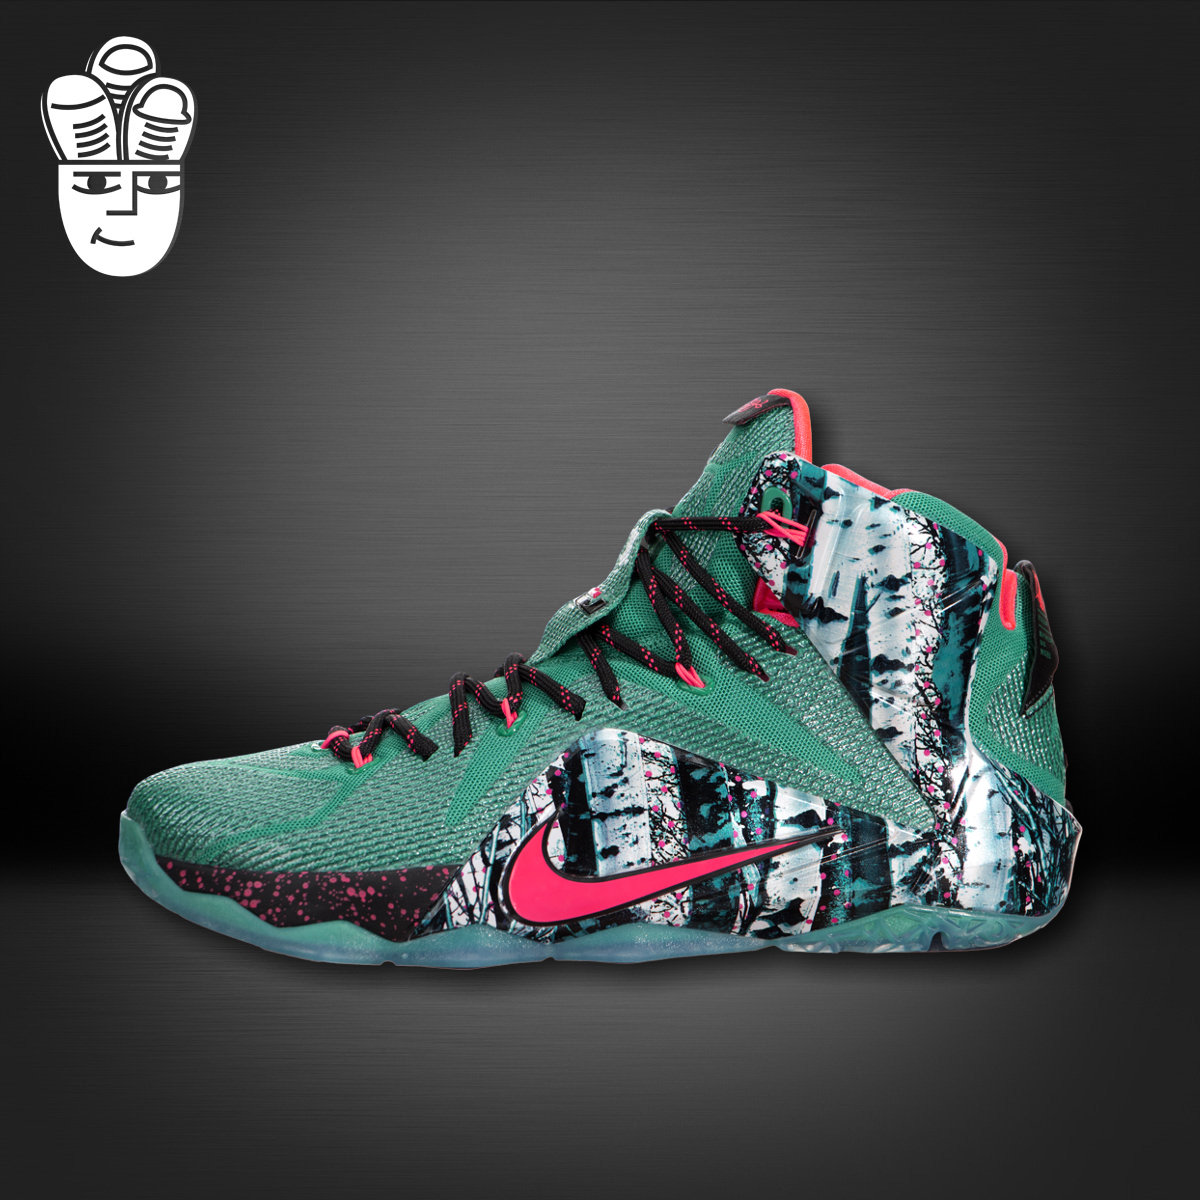 9d549a75359 Get Quotations · Nike lebron nike lebron 12 reeboks men high top basketball  shoes christmas limited 707558